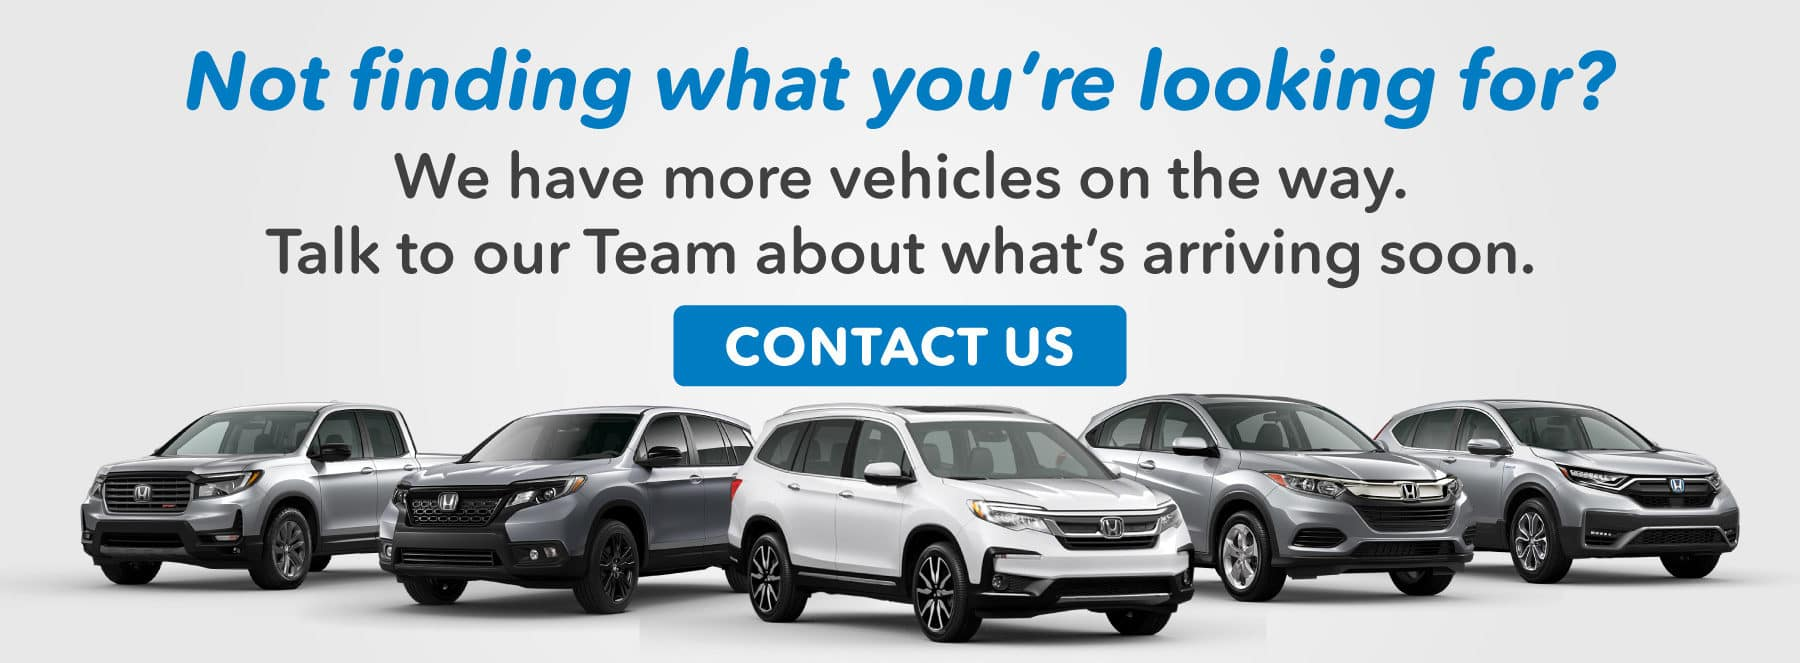 Not Finding What You're Looking For? Talk to our team and see what's arriving soon